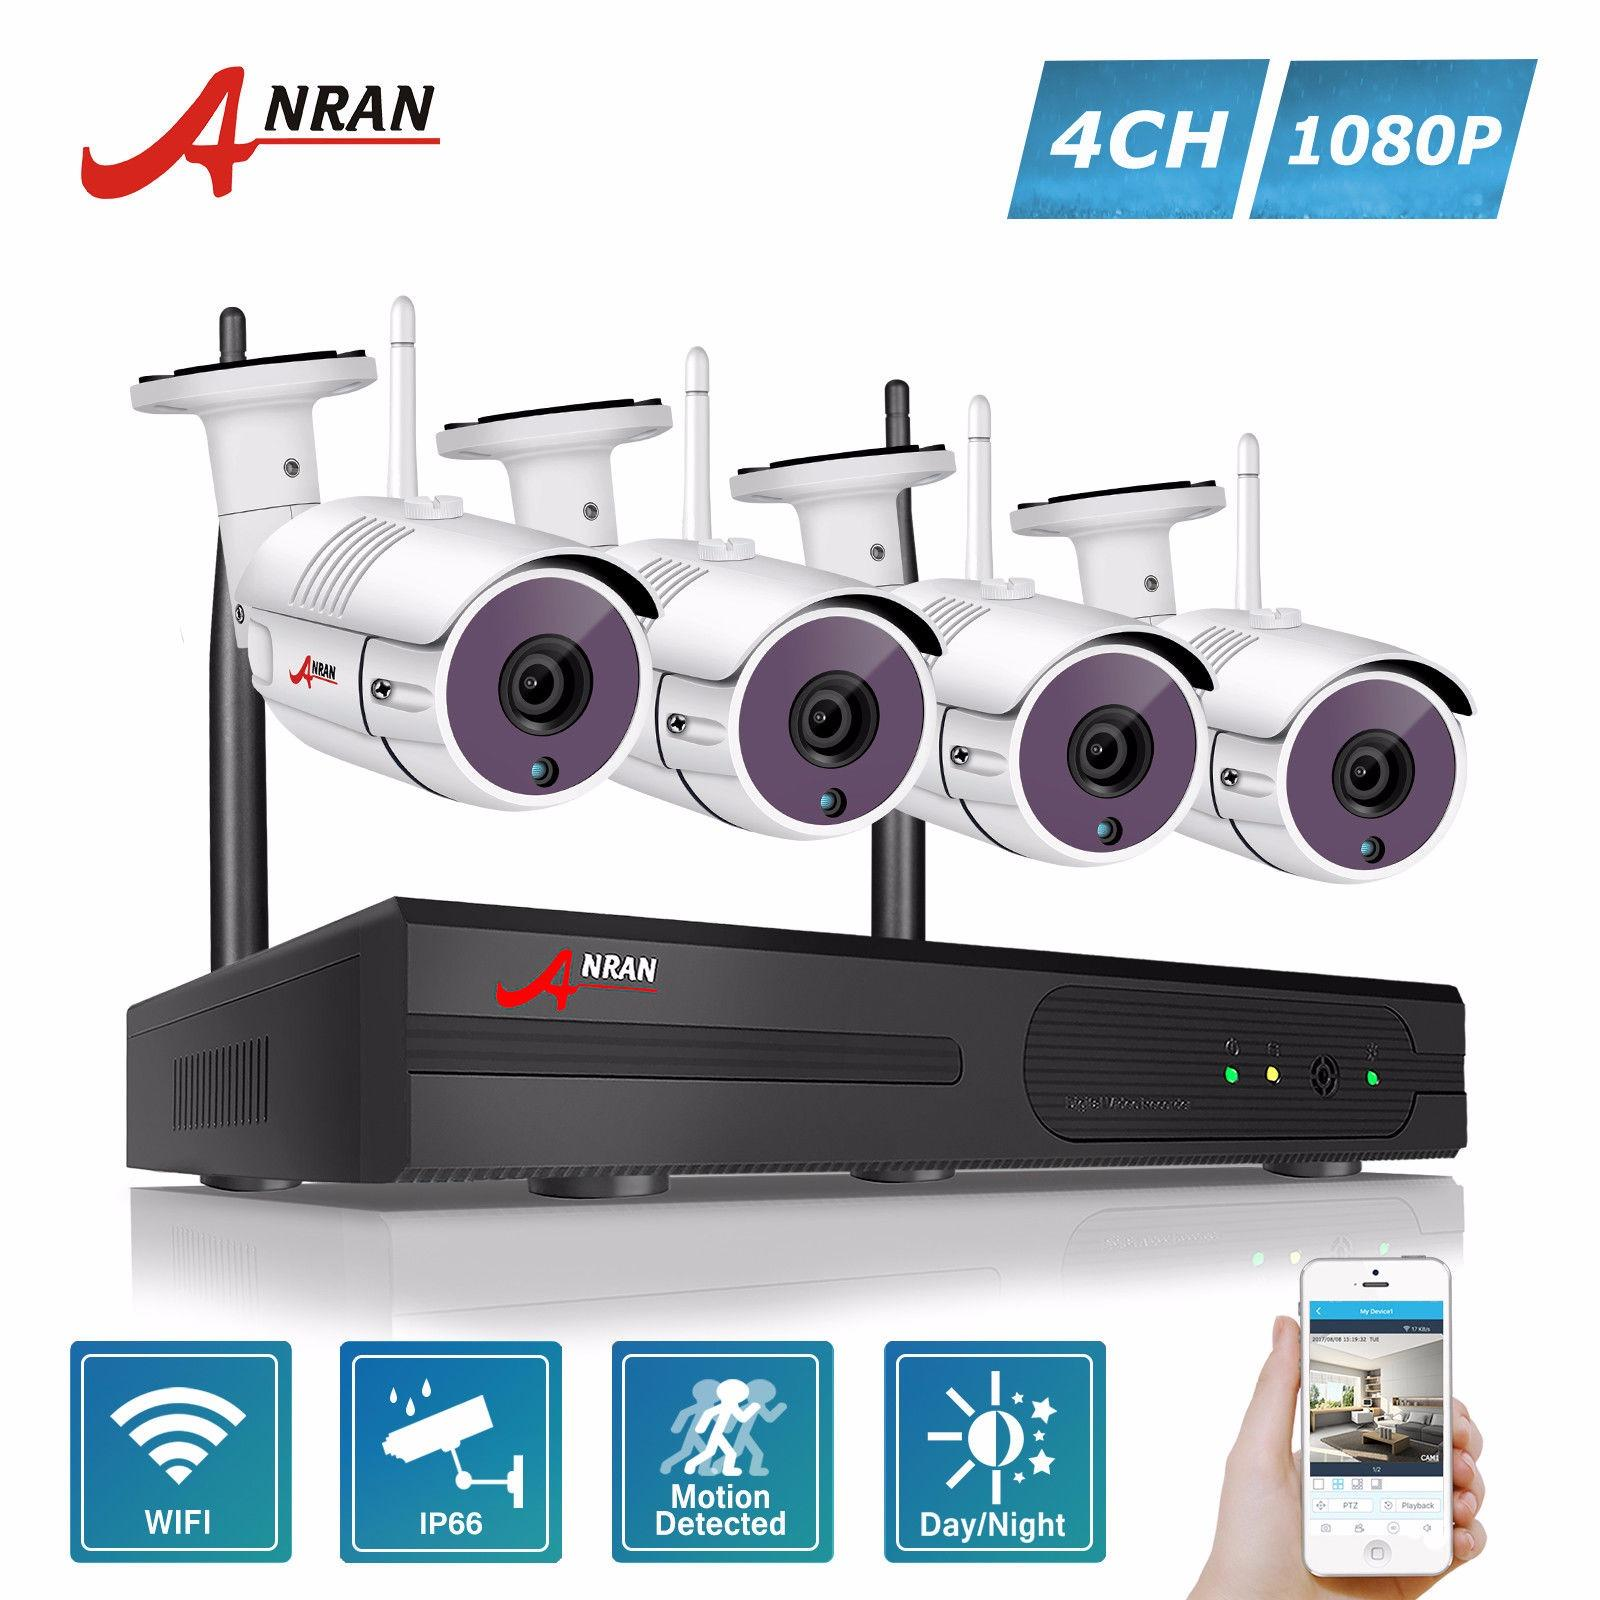 Jual Anran 4Ch Wireless Nvr Security Cctv System P2P 1080P Hd Outdoor Vandalproof Wfi Ip Camera Branded Murah